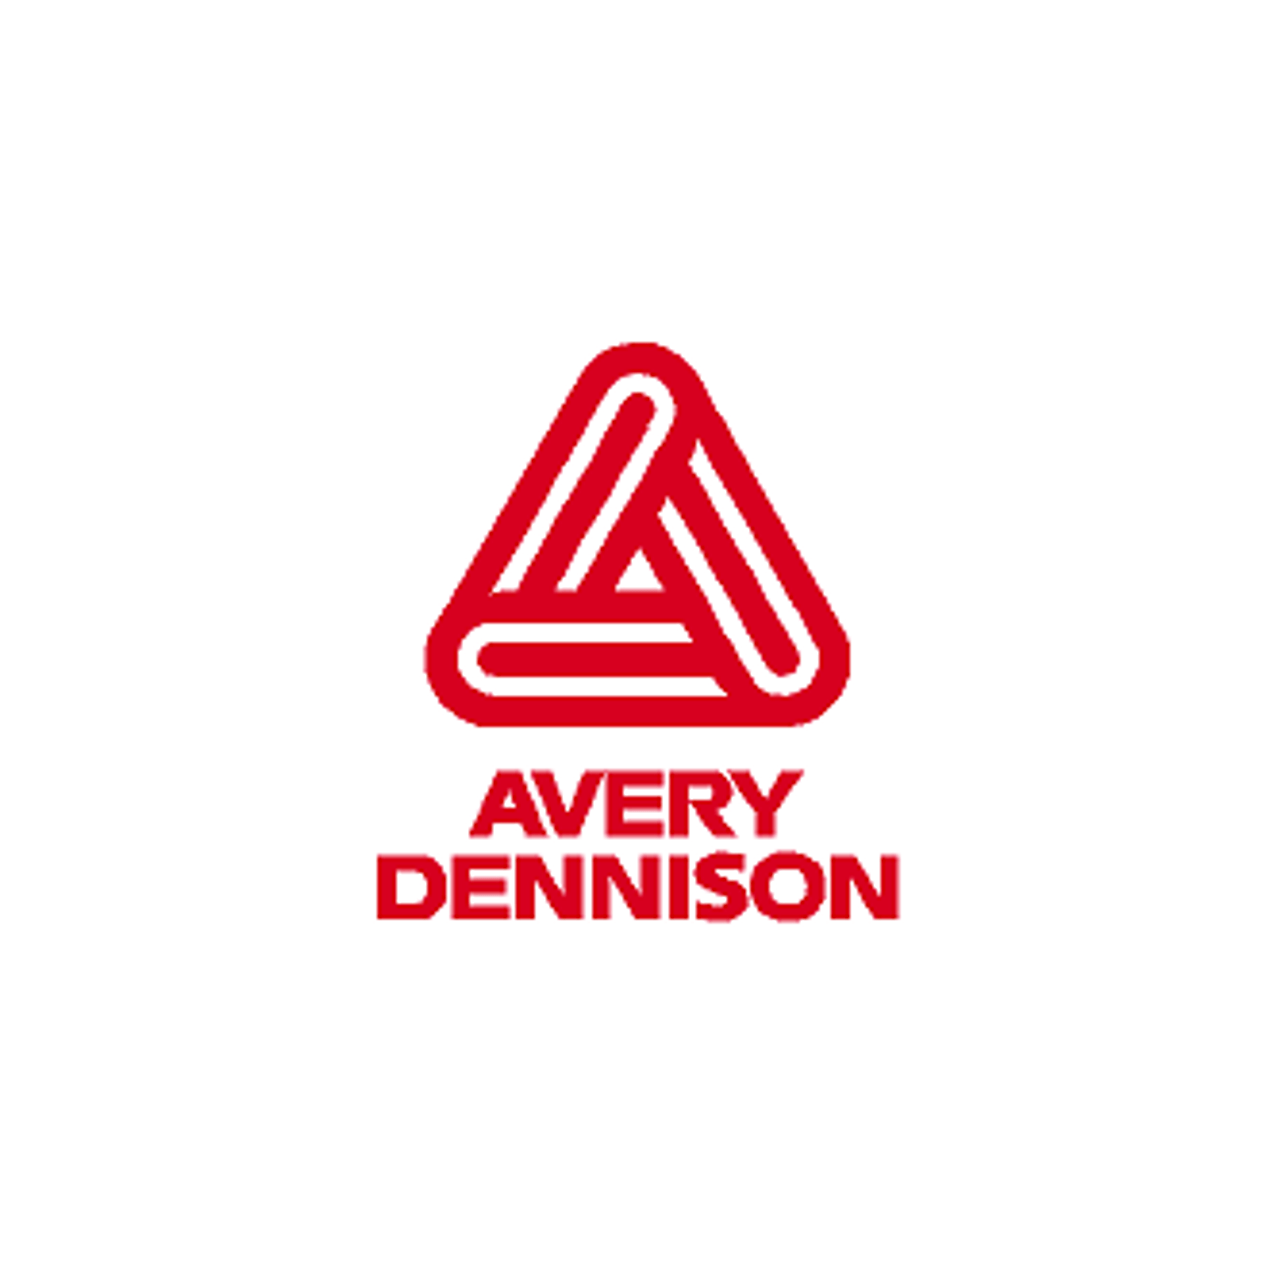 Avery Dennison T-1500 Engineer Grade Series